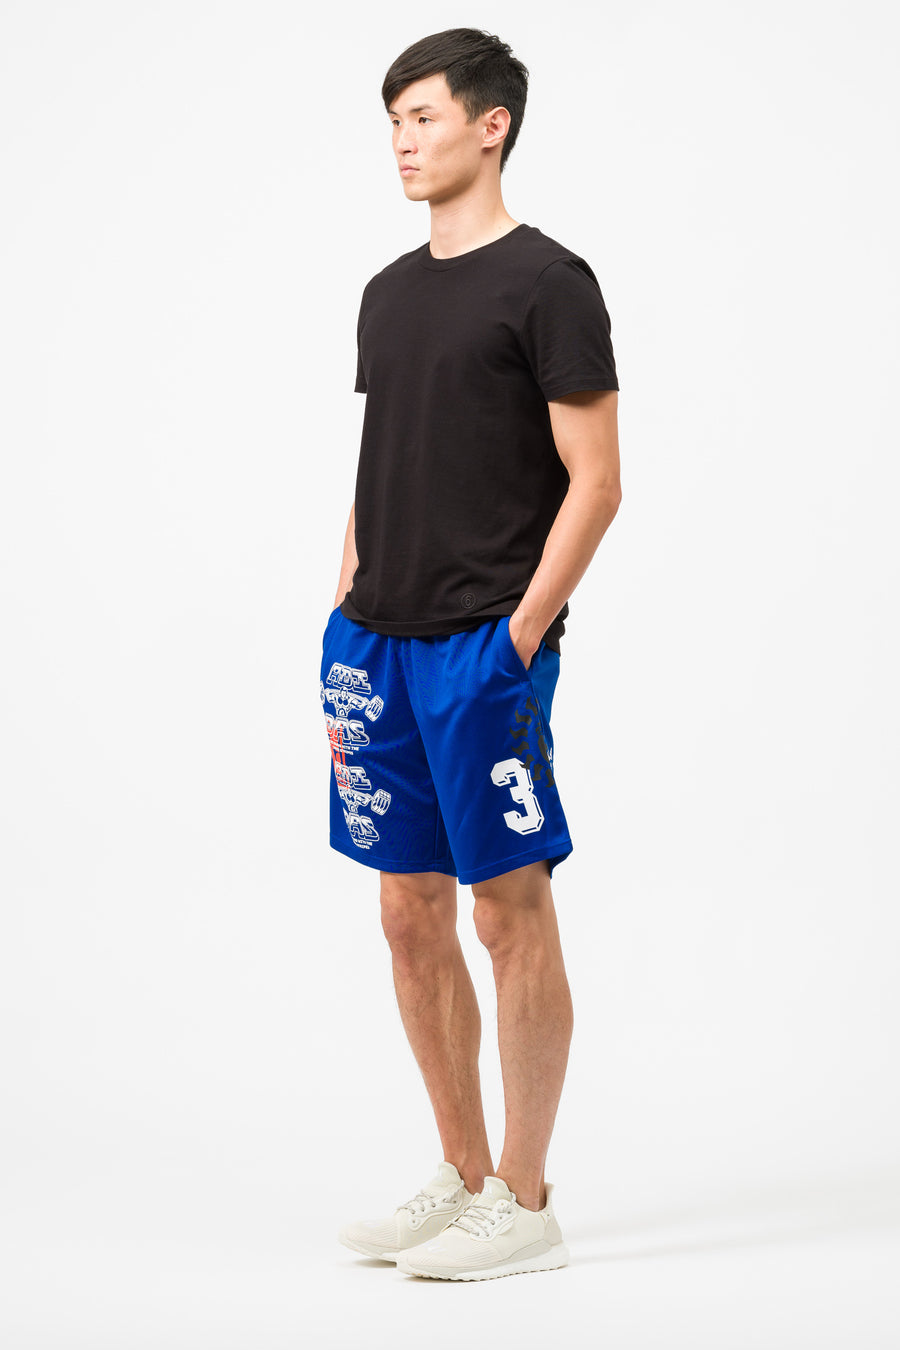 adidas Print Short in Royal/White - Notre